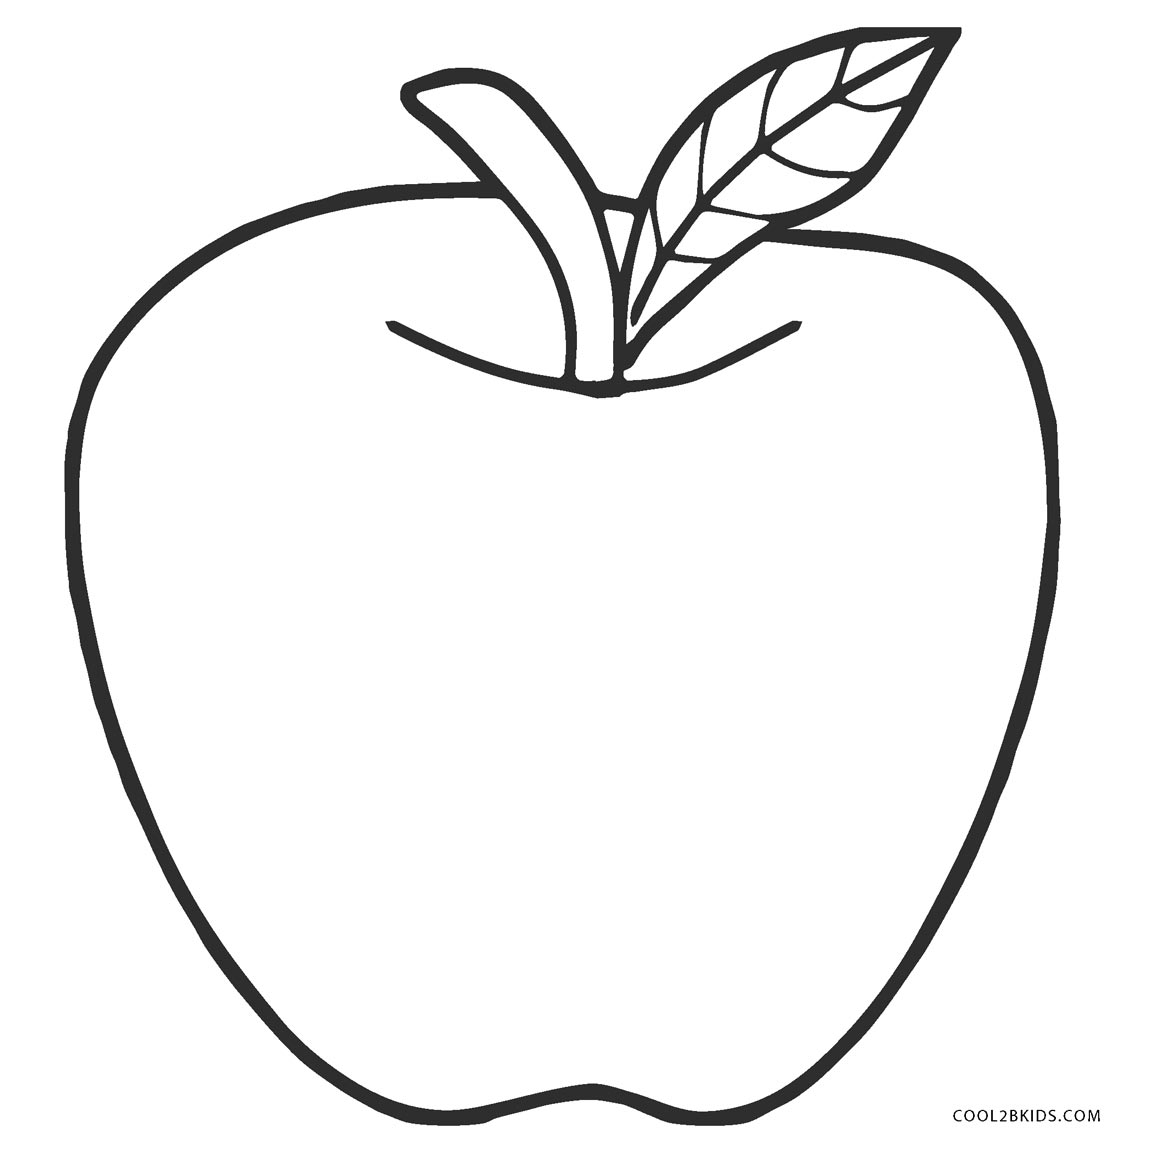 coloring picture apple free printable apple coloring pages for kids coloring picture apple